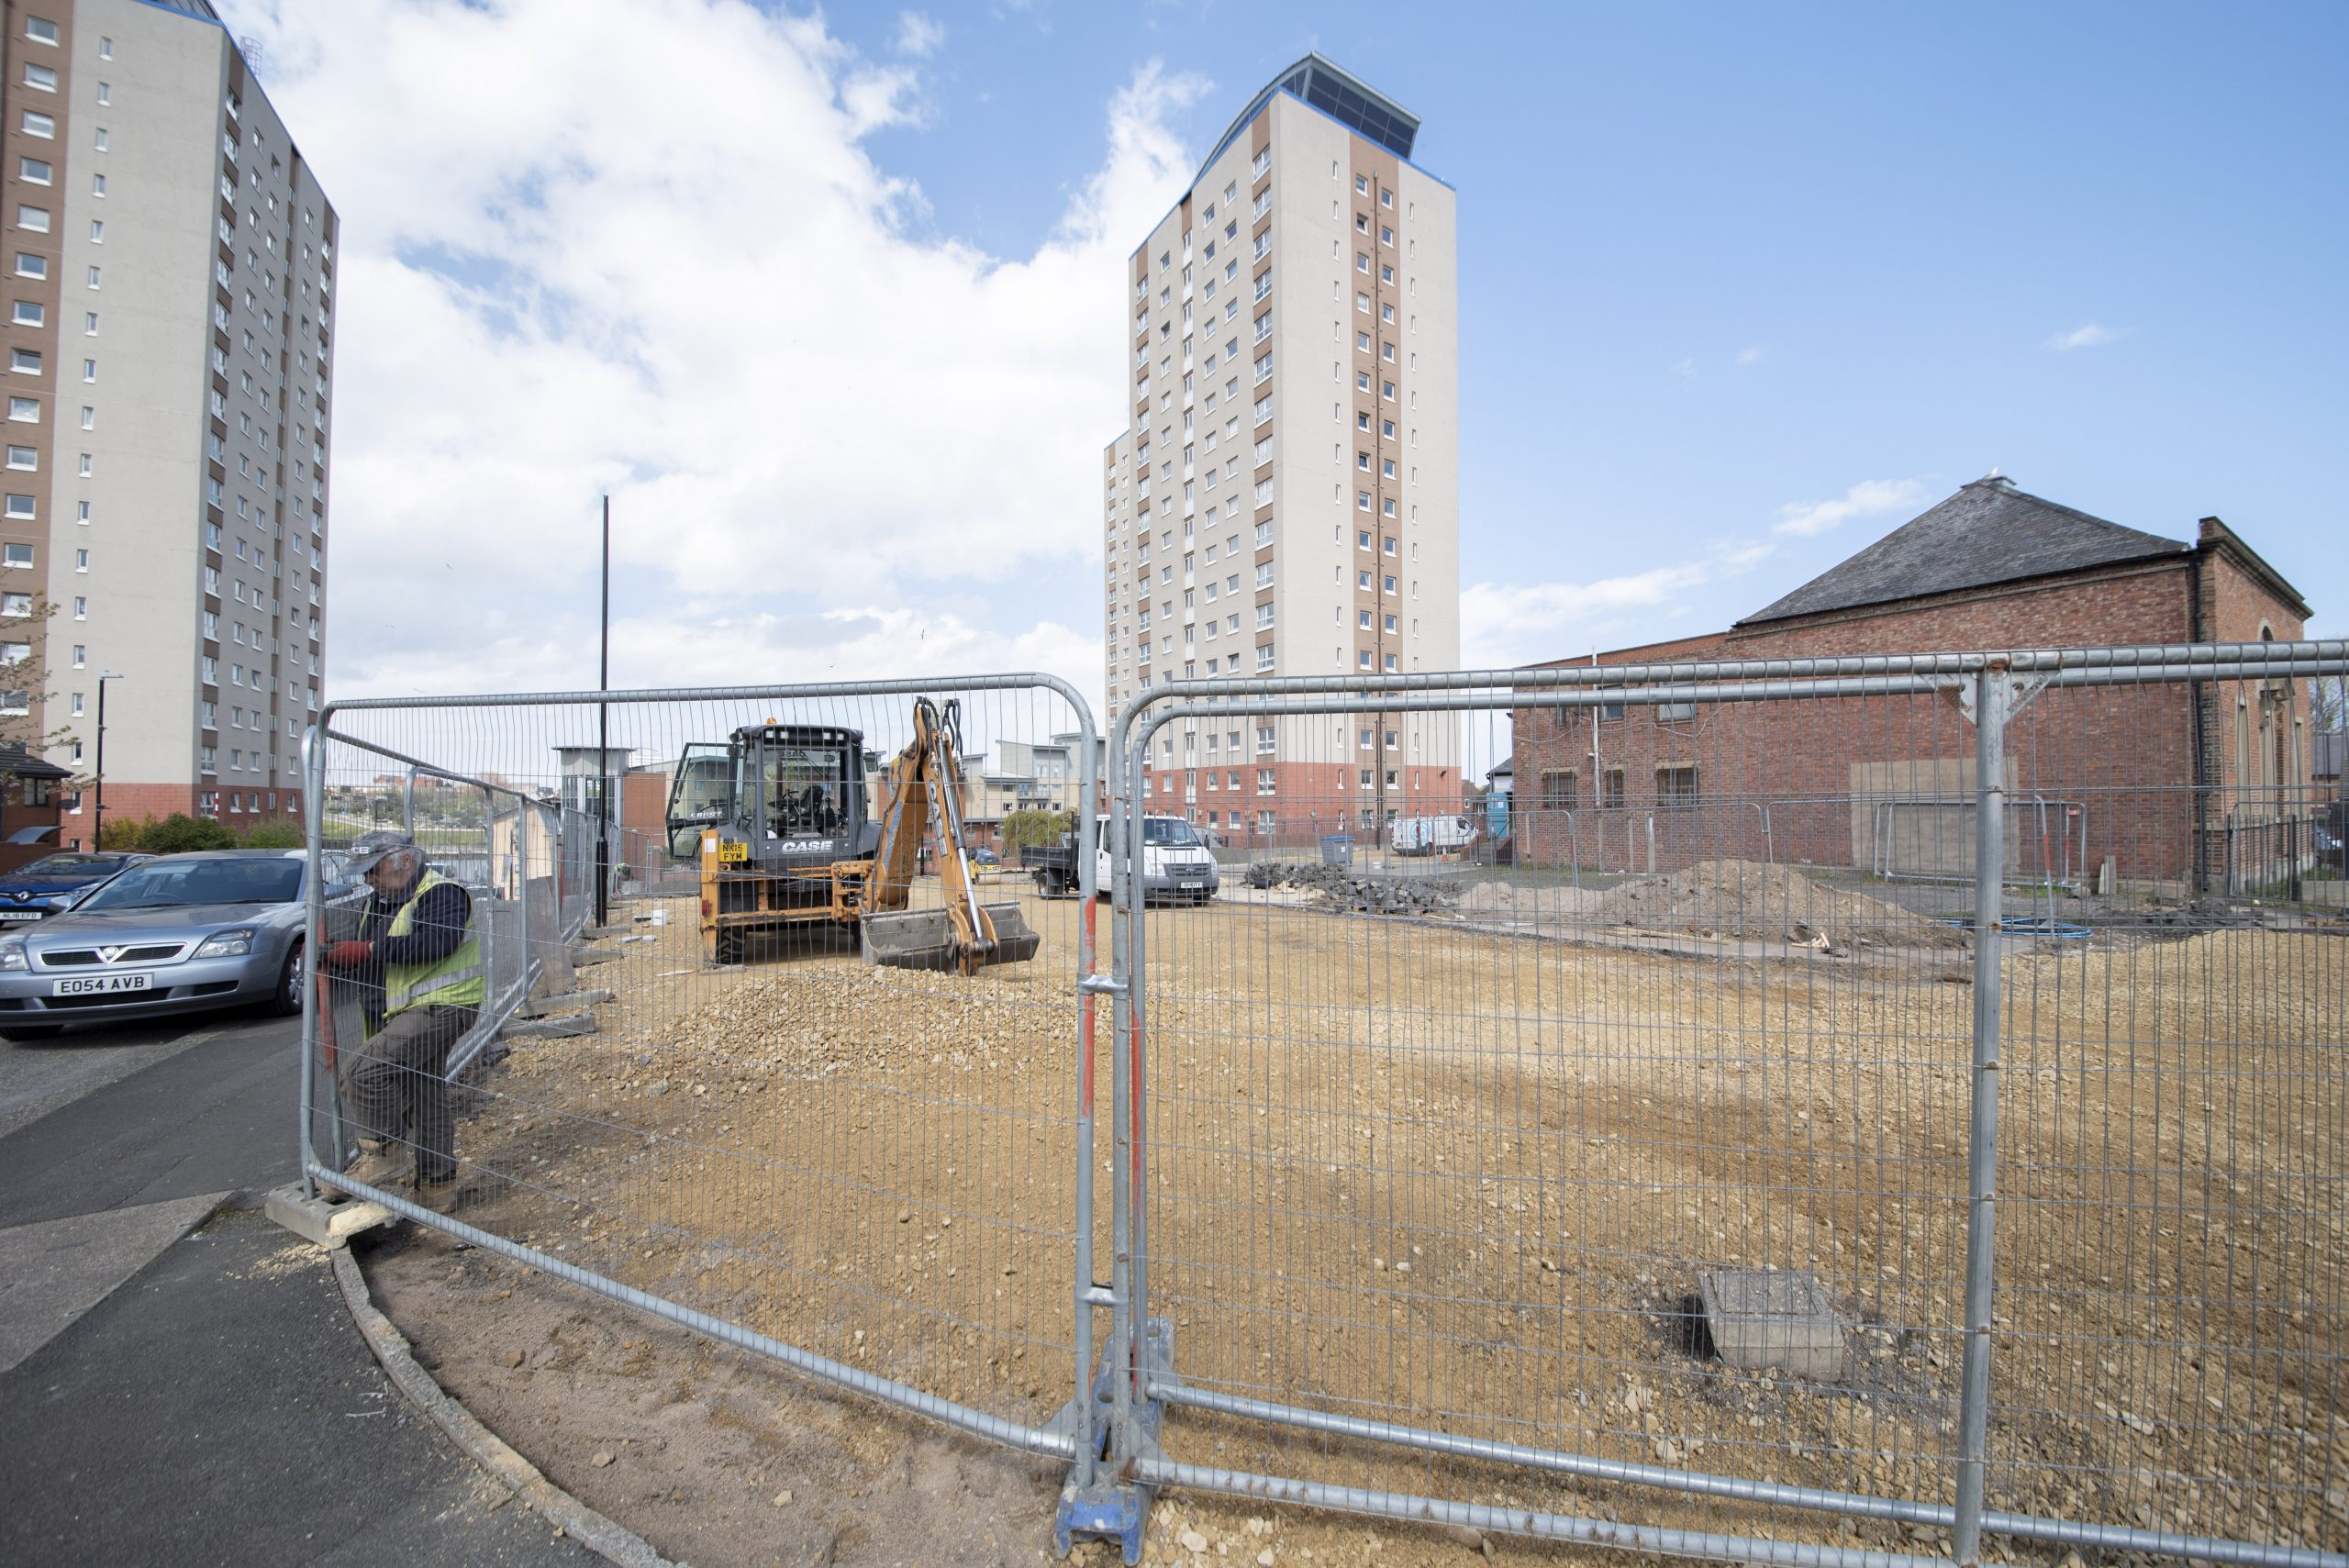 7th May 2021 ongoing site work